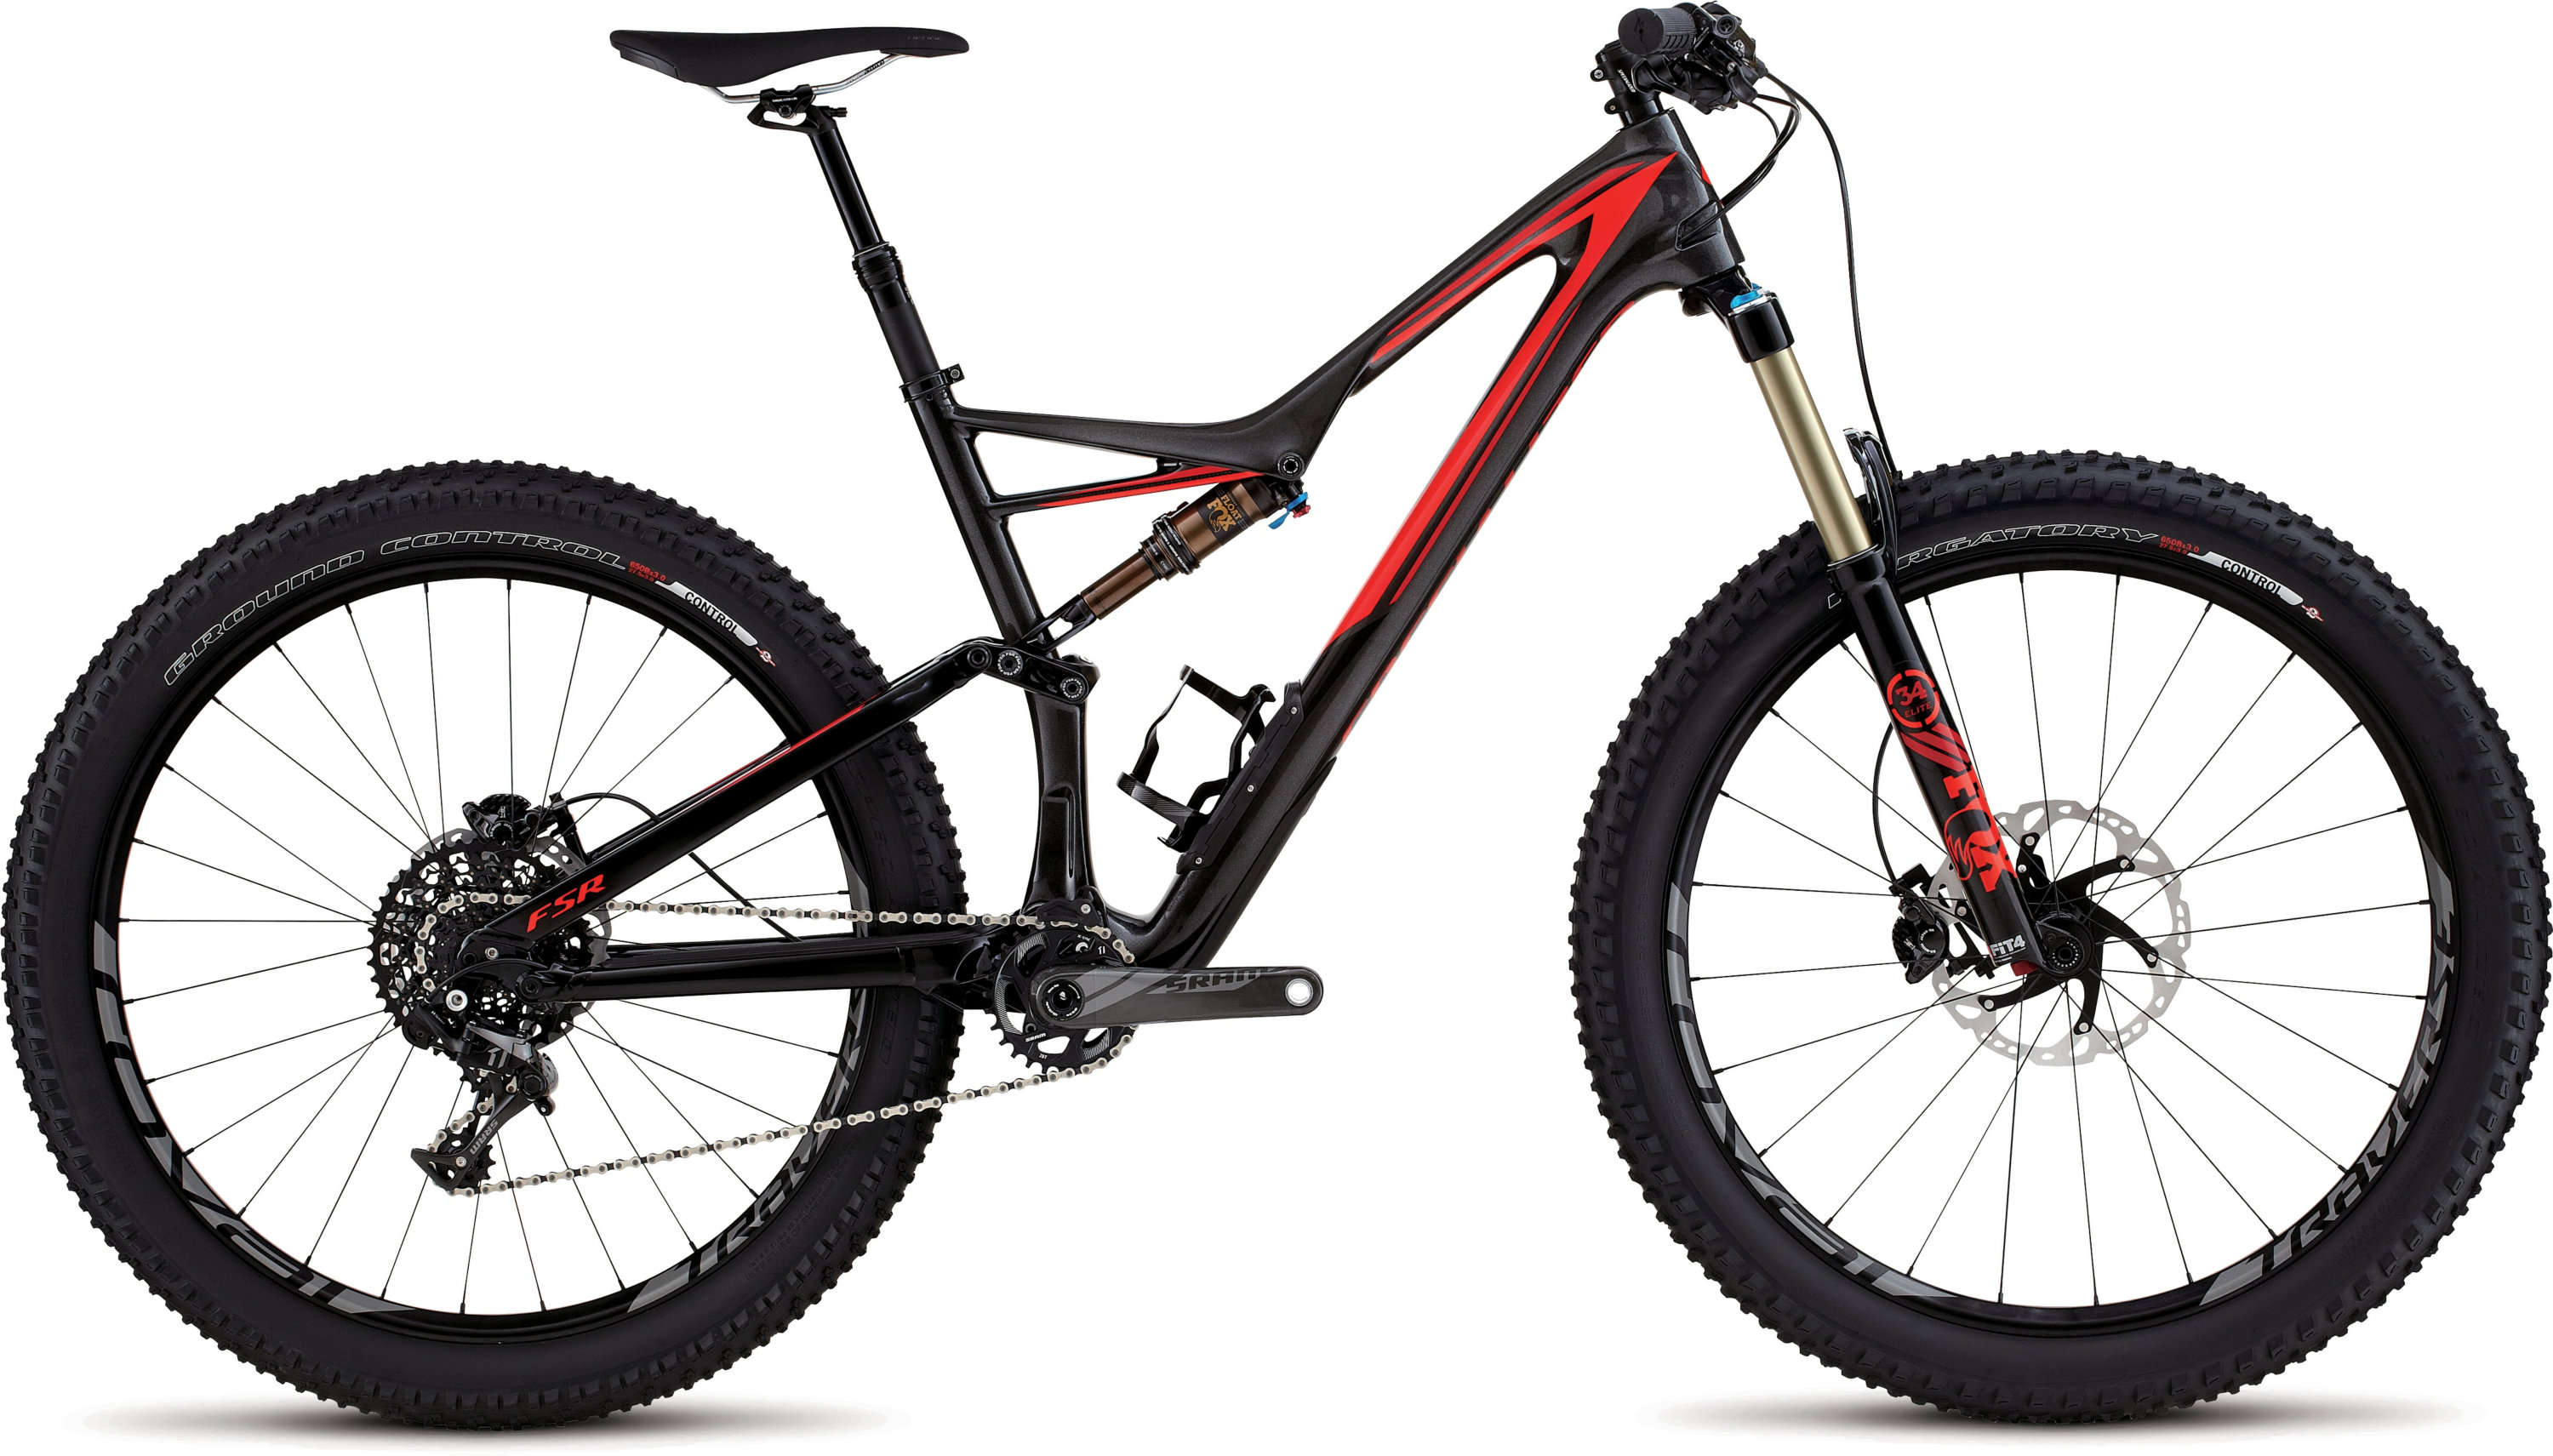 SPECIALIZED SJ FSR EXPERT CARBON 6FATTIE SILTNTCARB/RKTRED/FLORED XL - schneider-sports